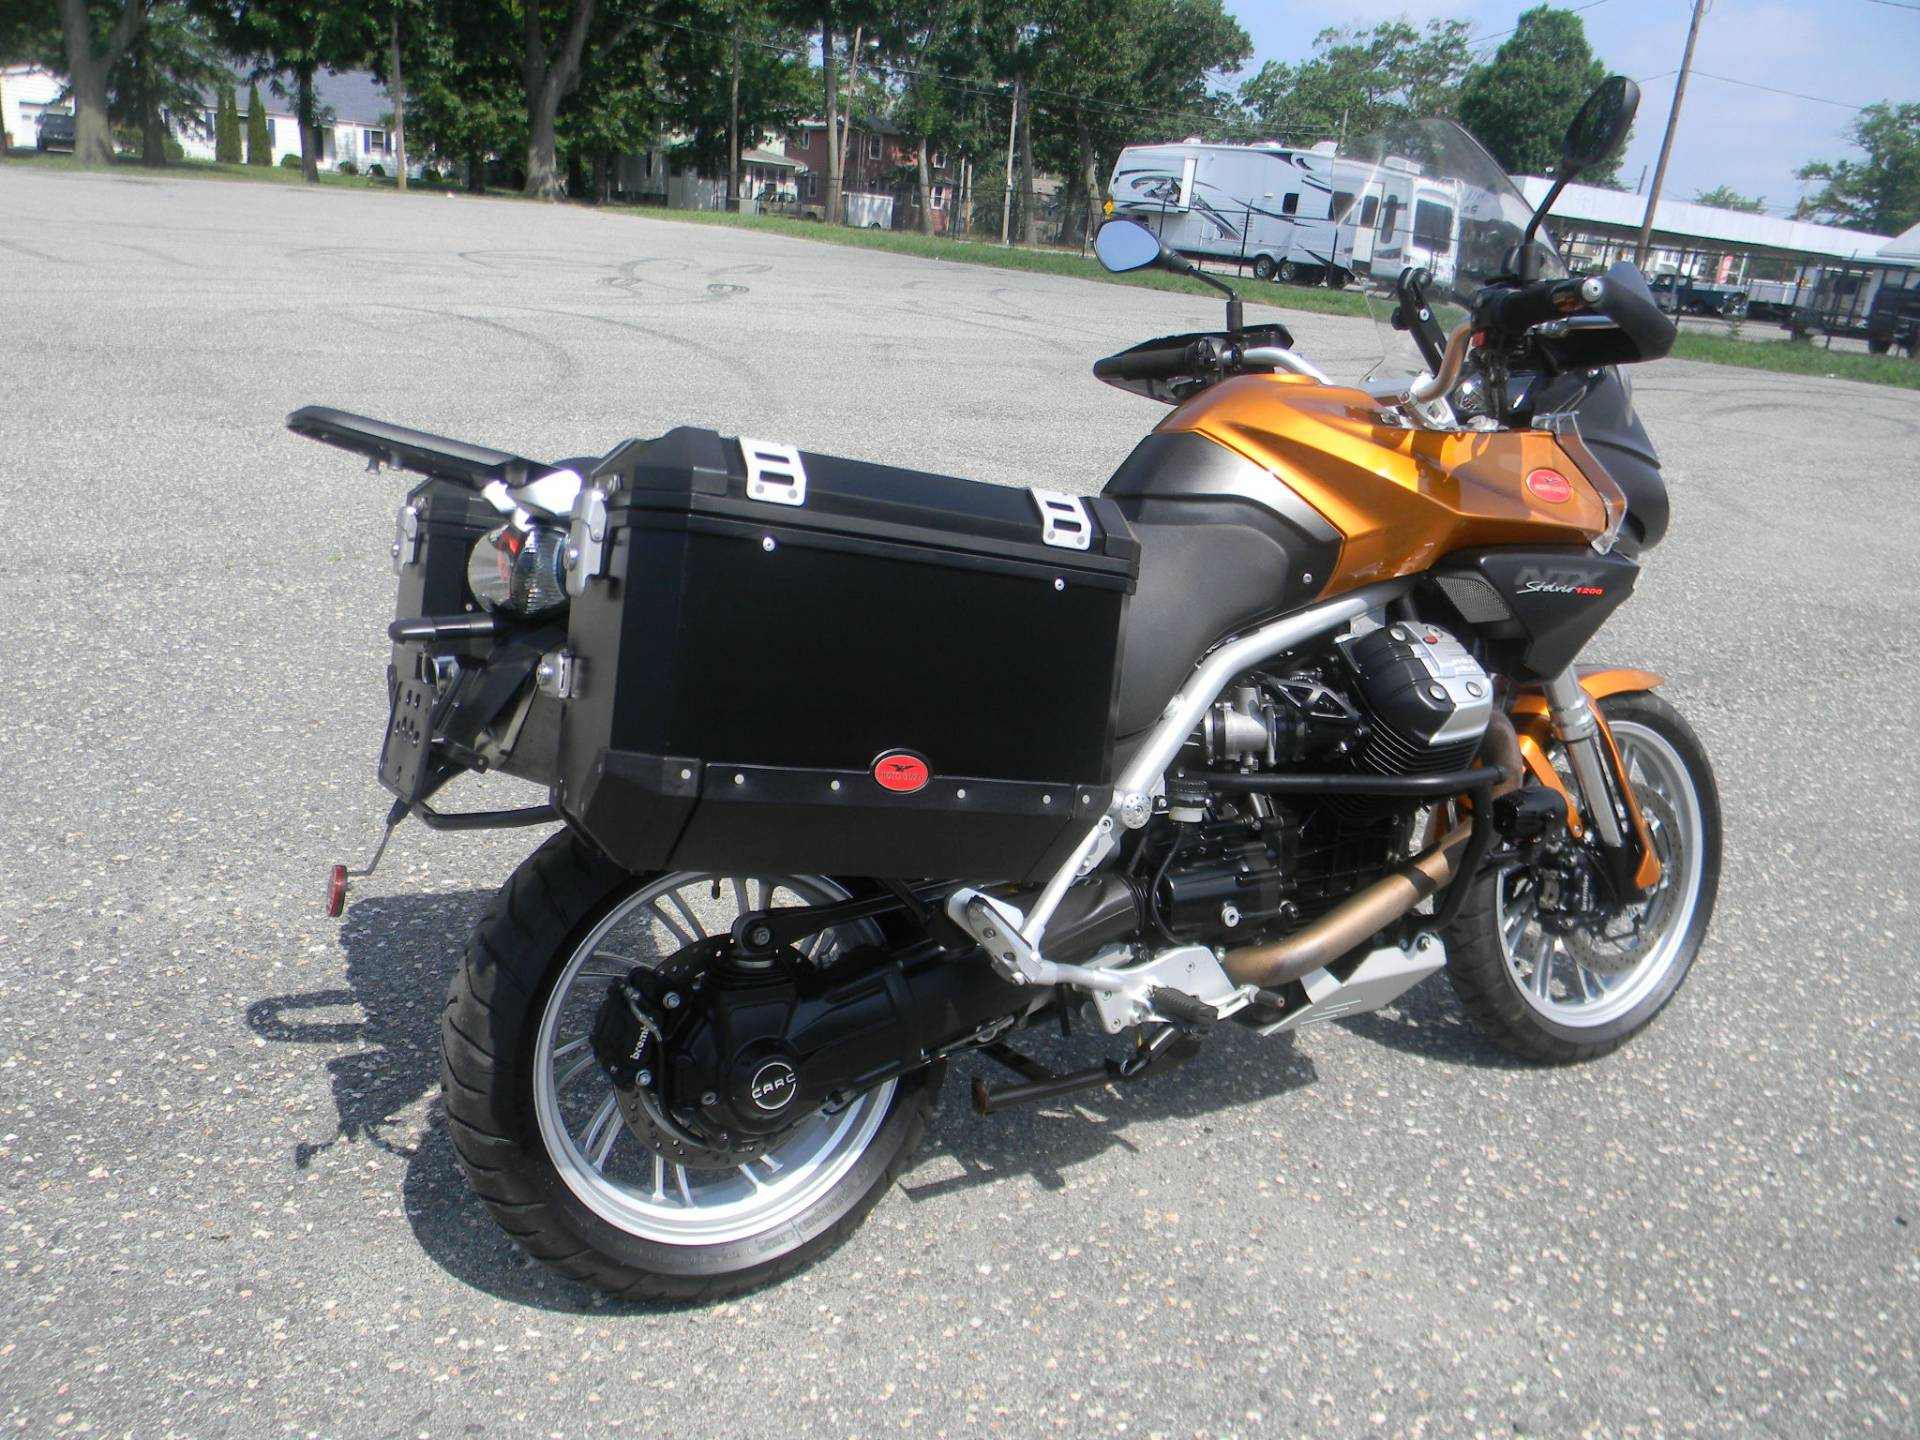 2013 Moto Guzzi Stelvio 1200 NTX ABS in Springfield, Massachusetts - Photo 3